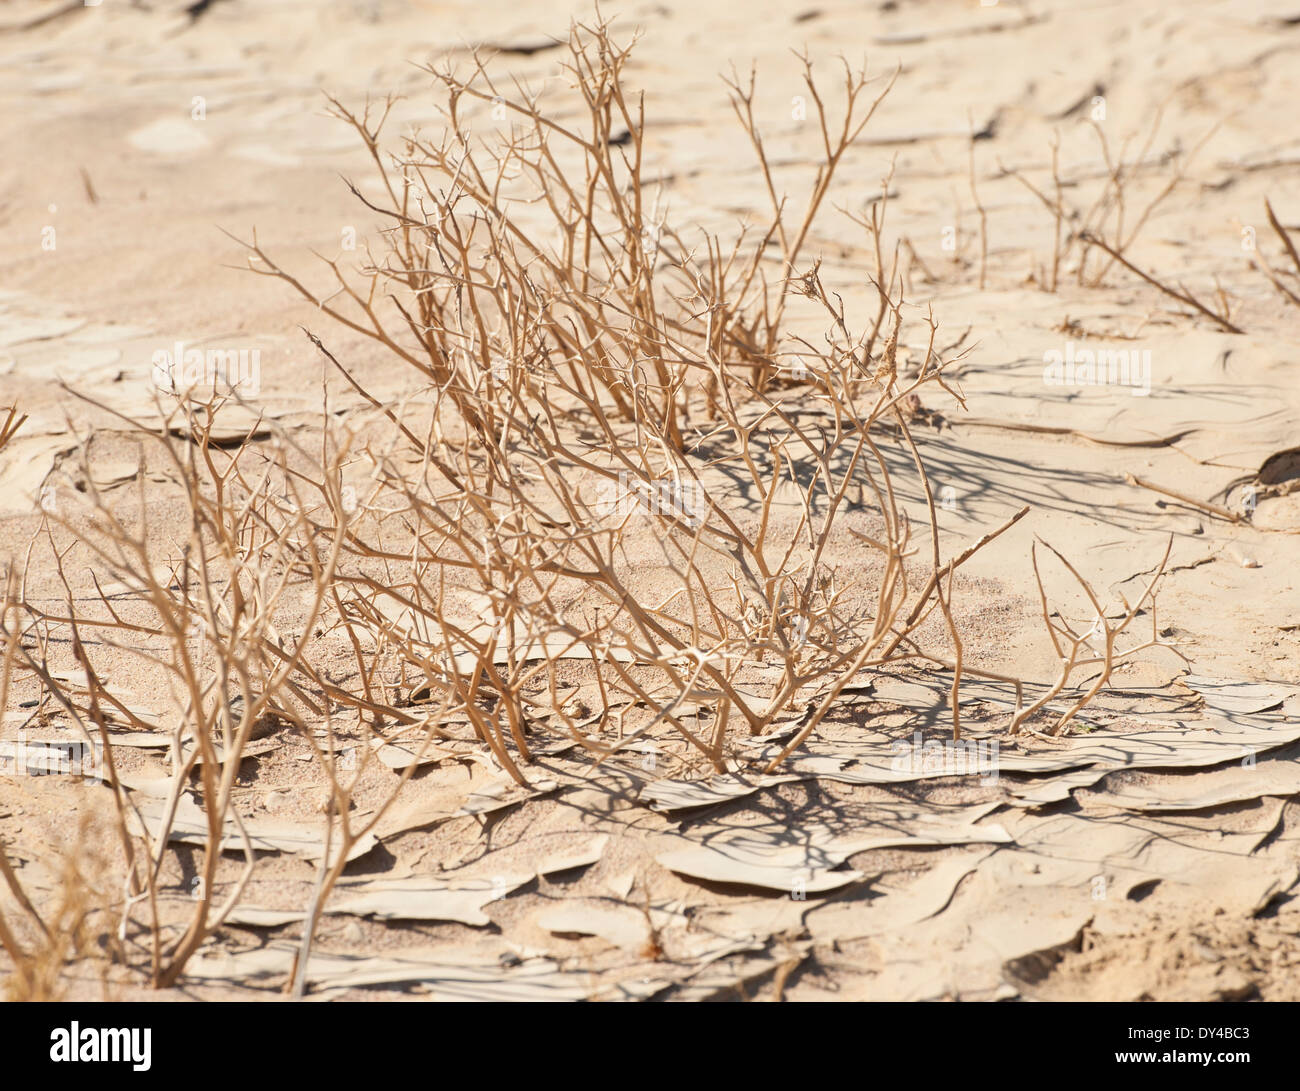 Dried plants in an arid dry desert environment - Stock Image